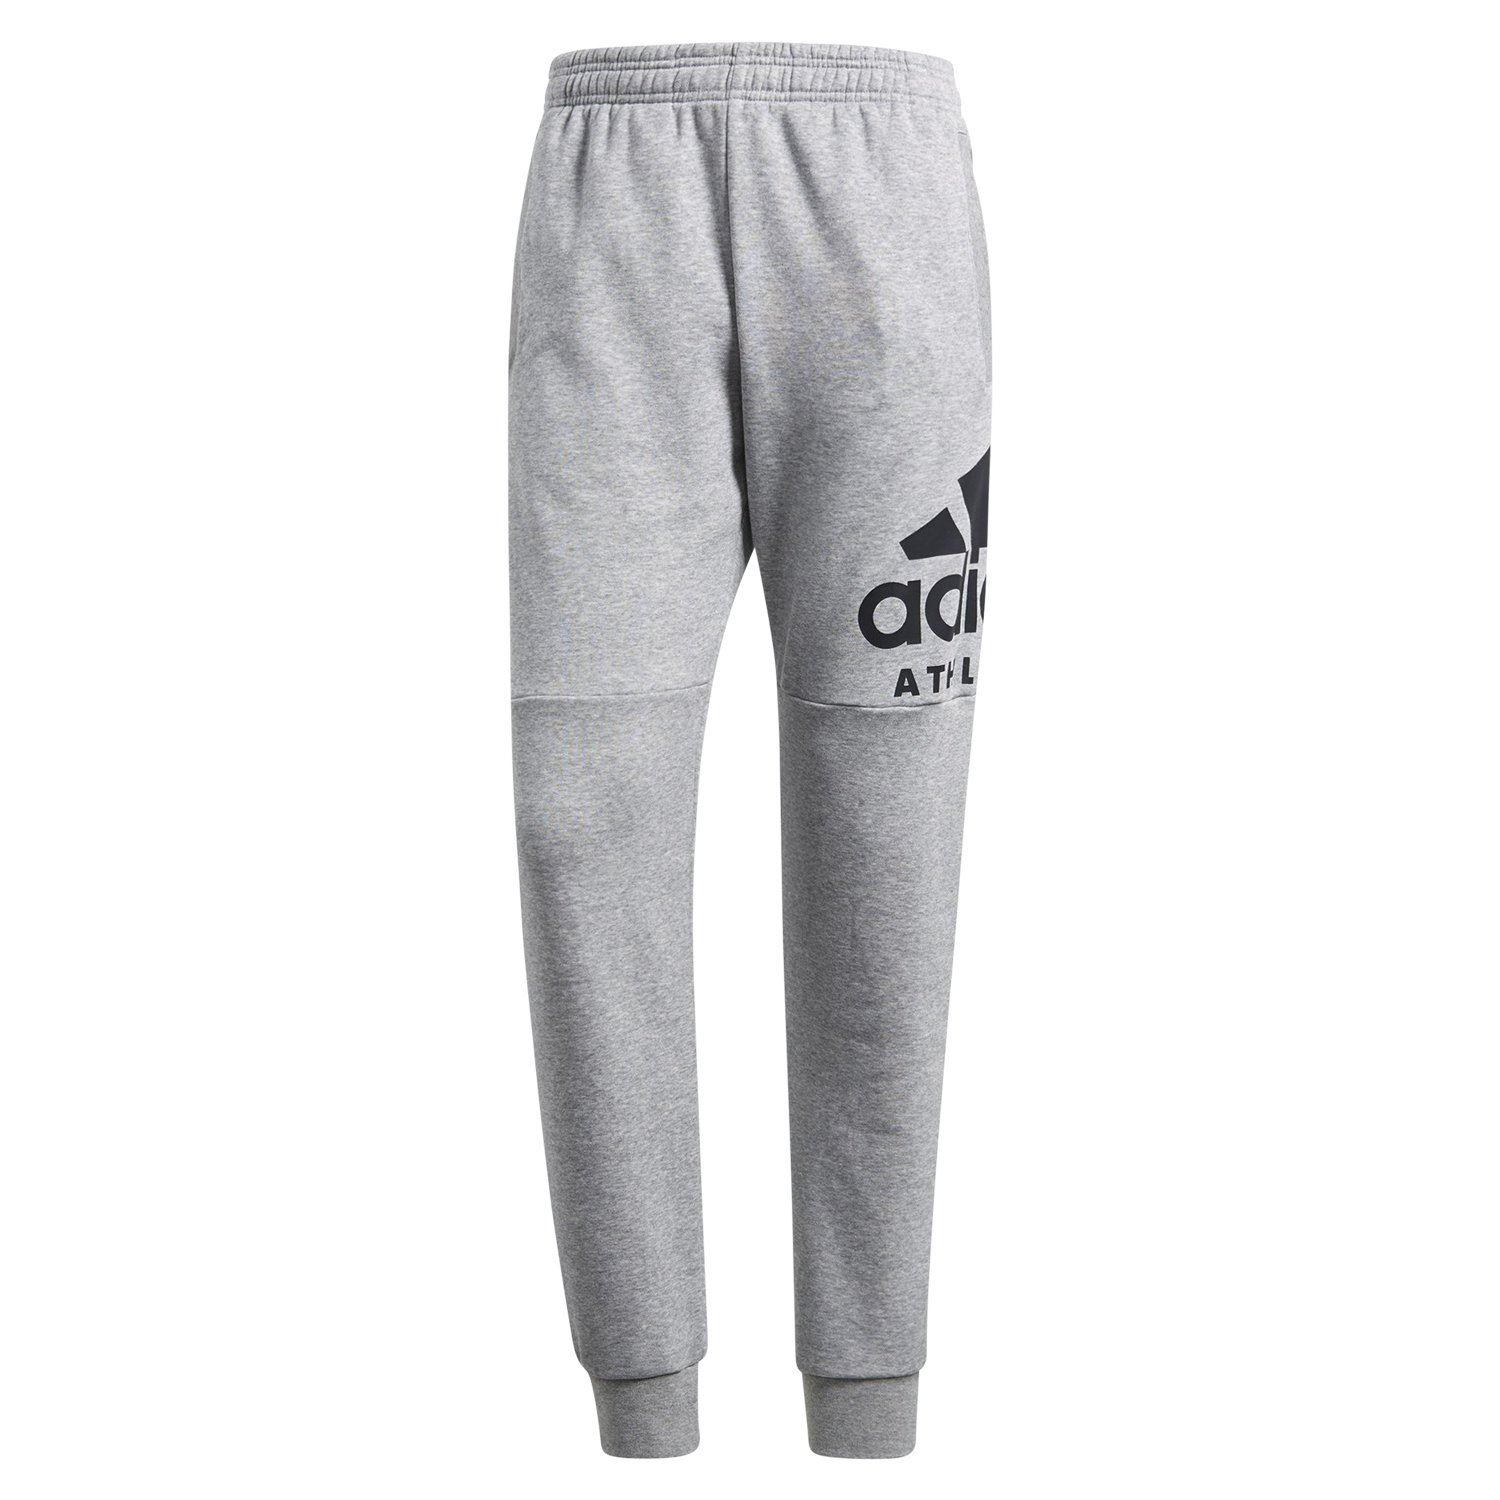 27285884b4bf9 Details about adidas ESSENTIALS SPORT ID TRACK PANTS GREY TRACKIES MEN'S  GYM LEISURE FLEECE